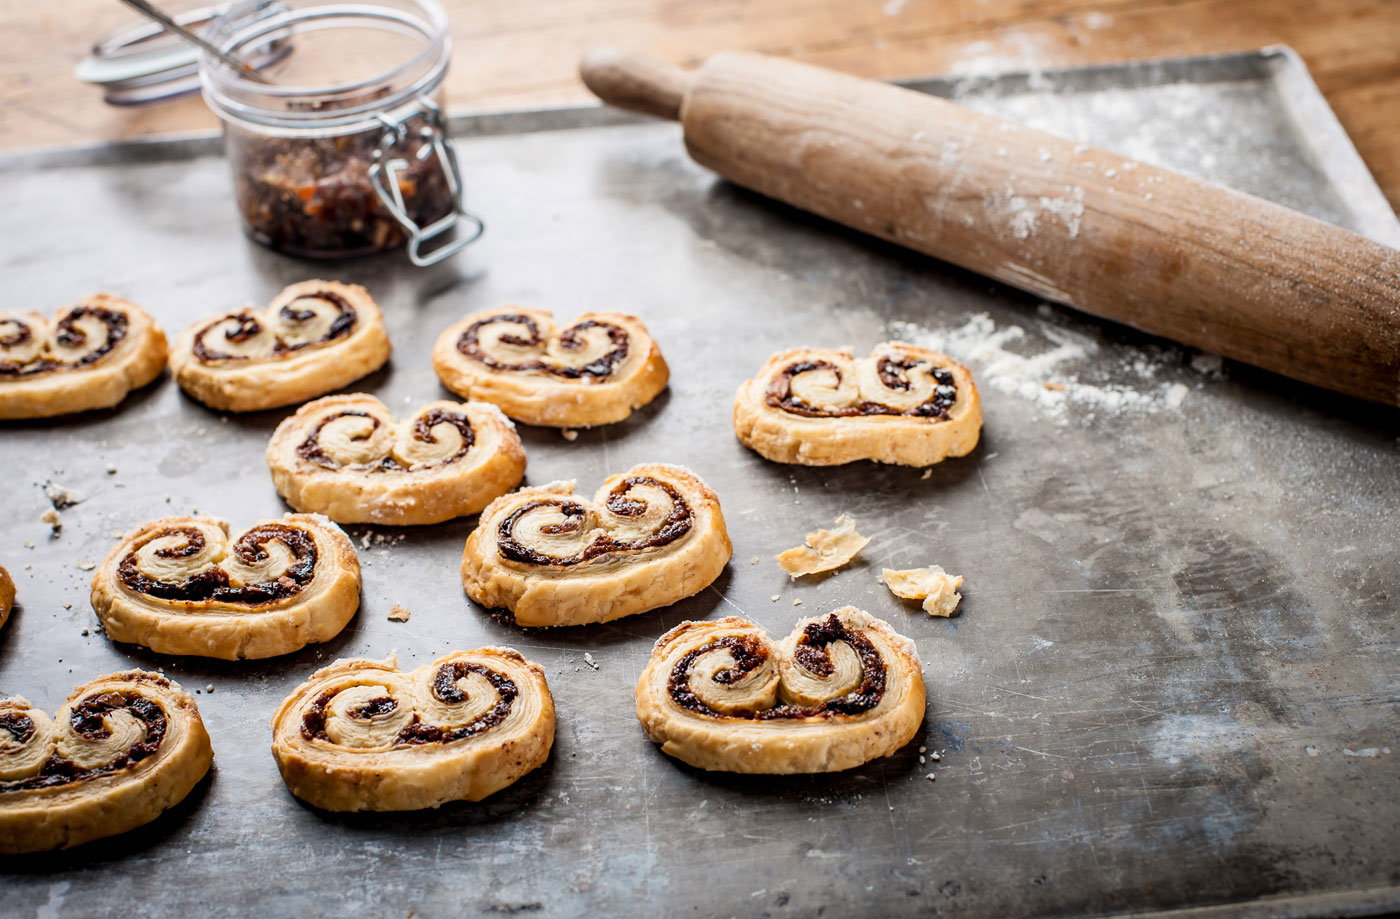 Adam Byatt's mini mincemeat puffs recipe